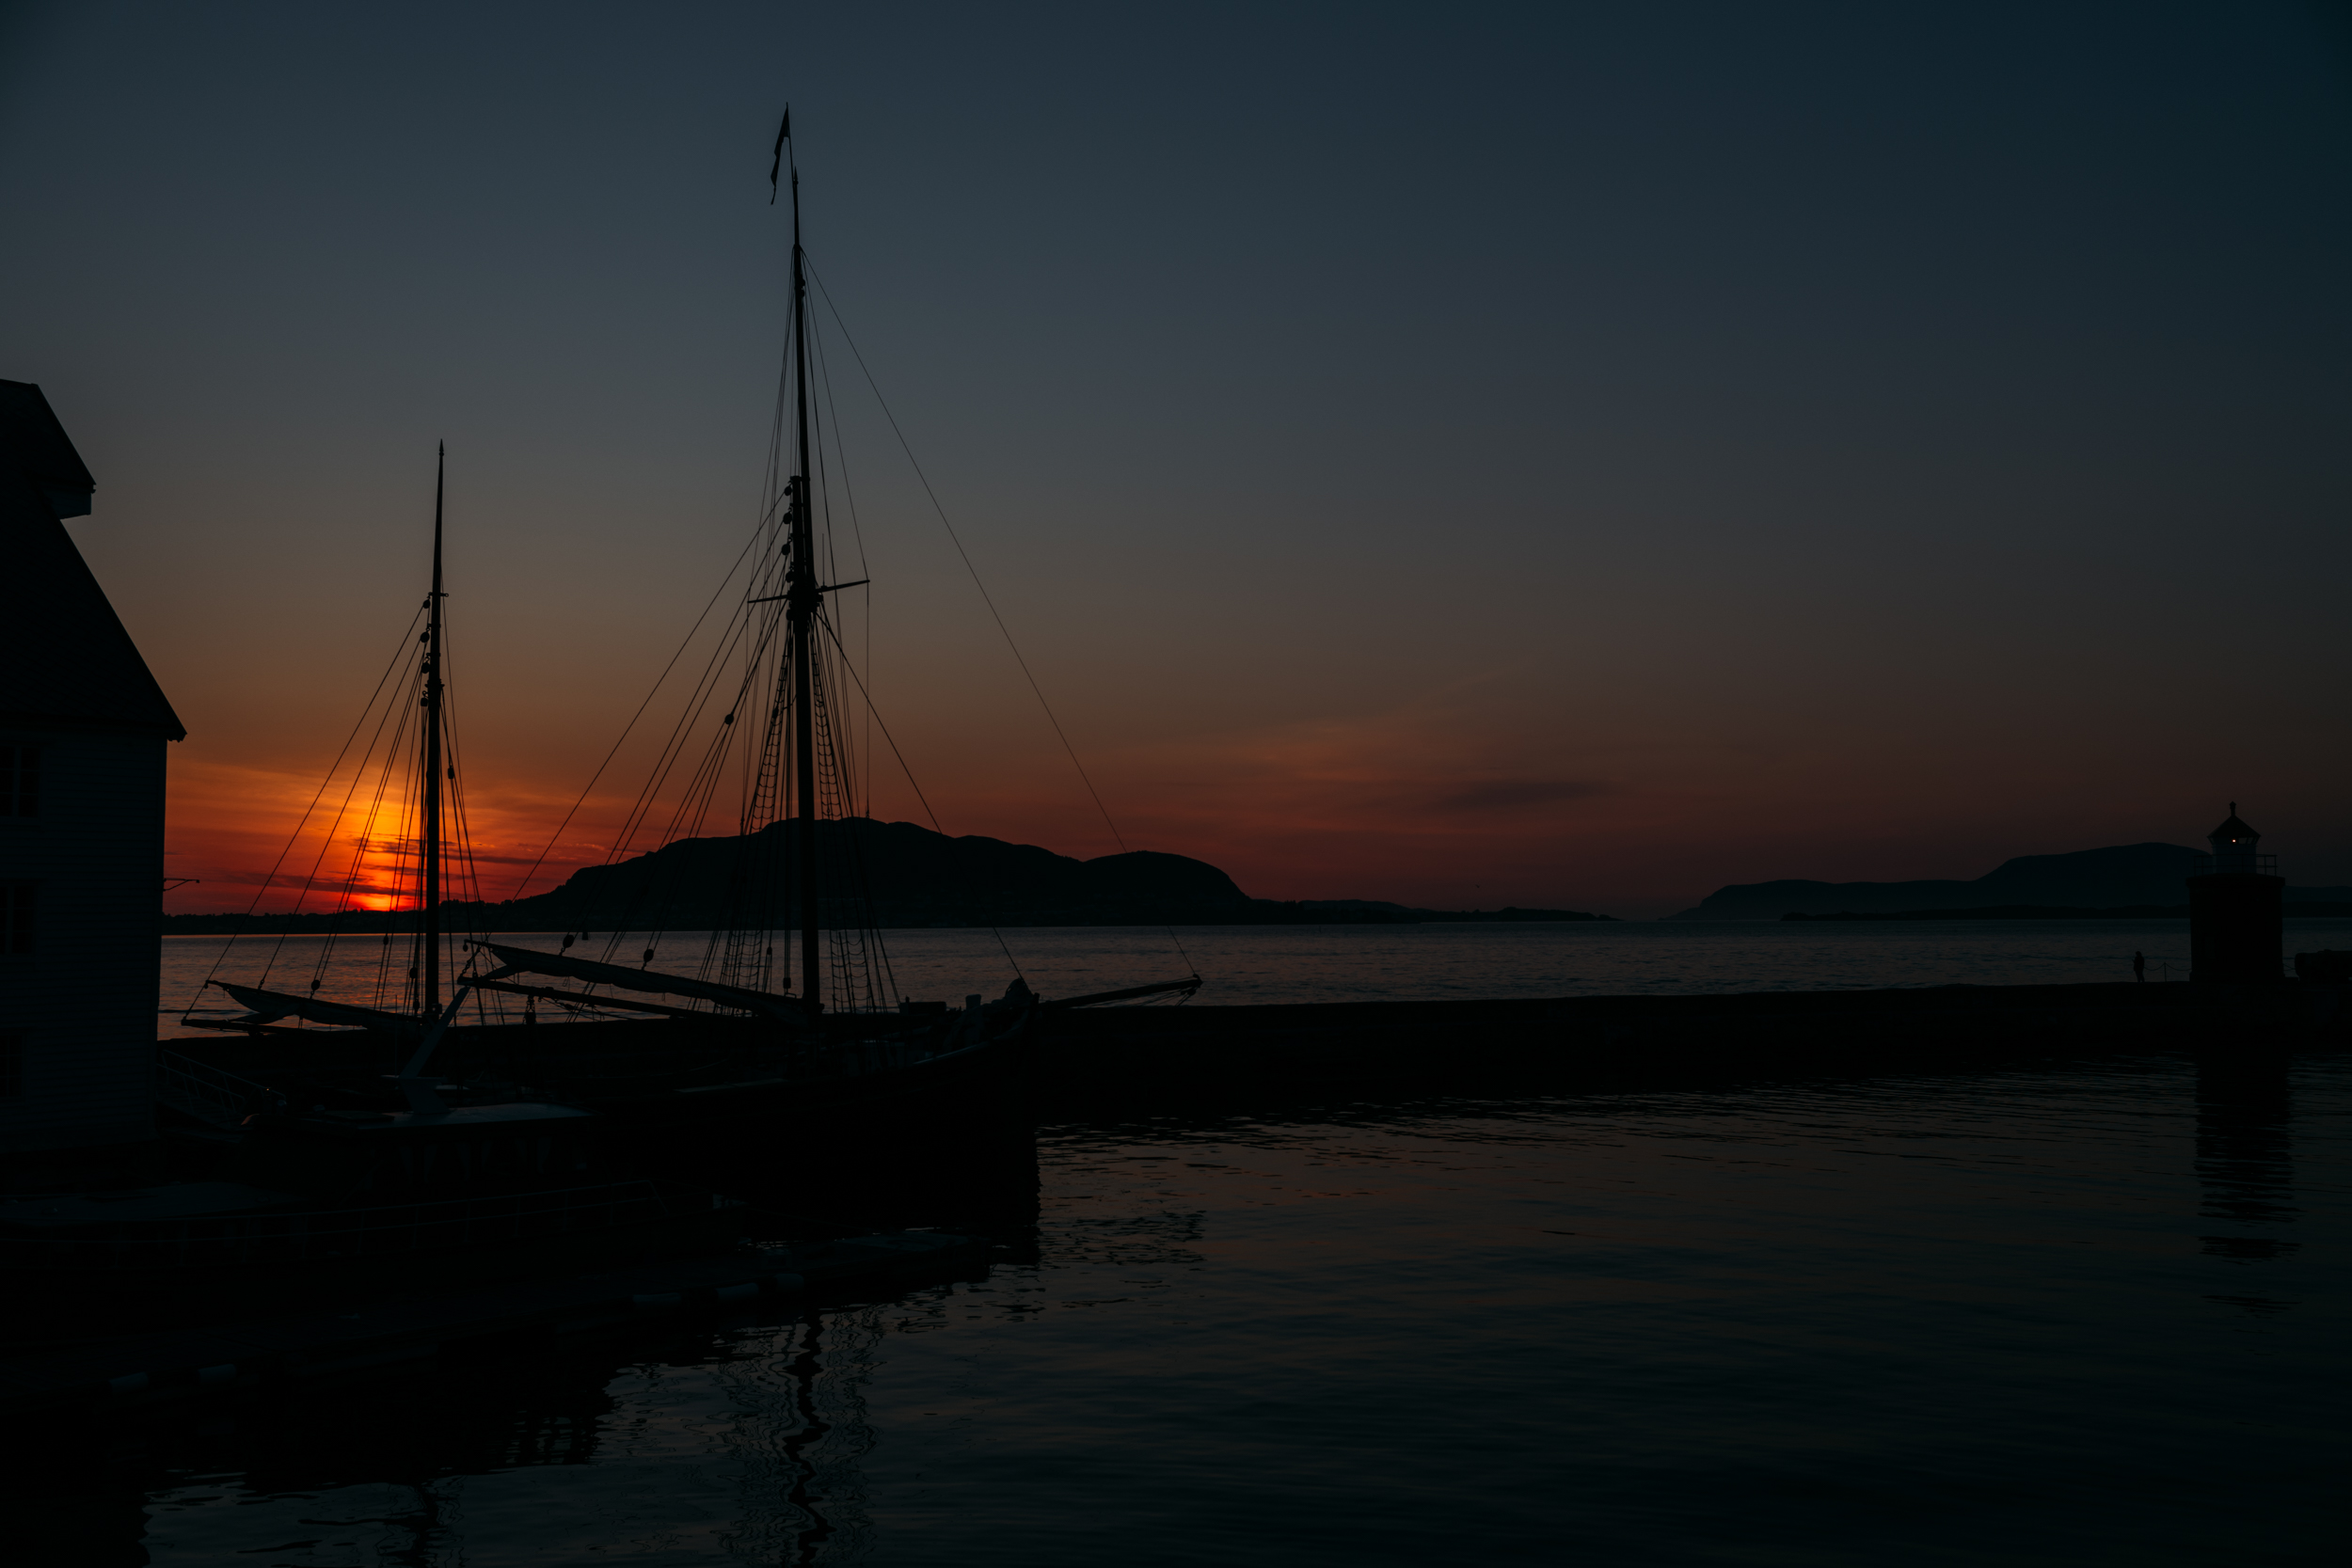 Sunset on one of the evenings we spent wandering around downtown Ålesund after a stunning meal.